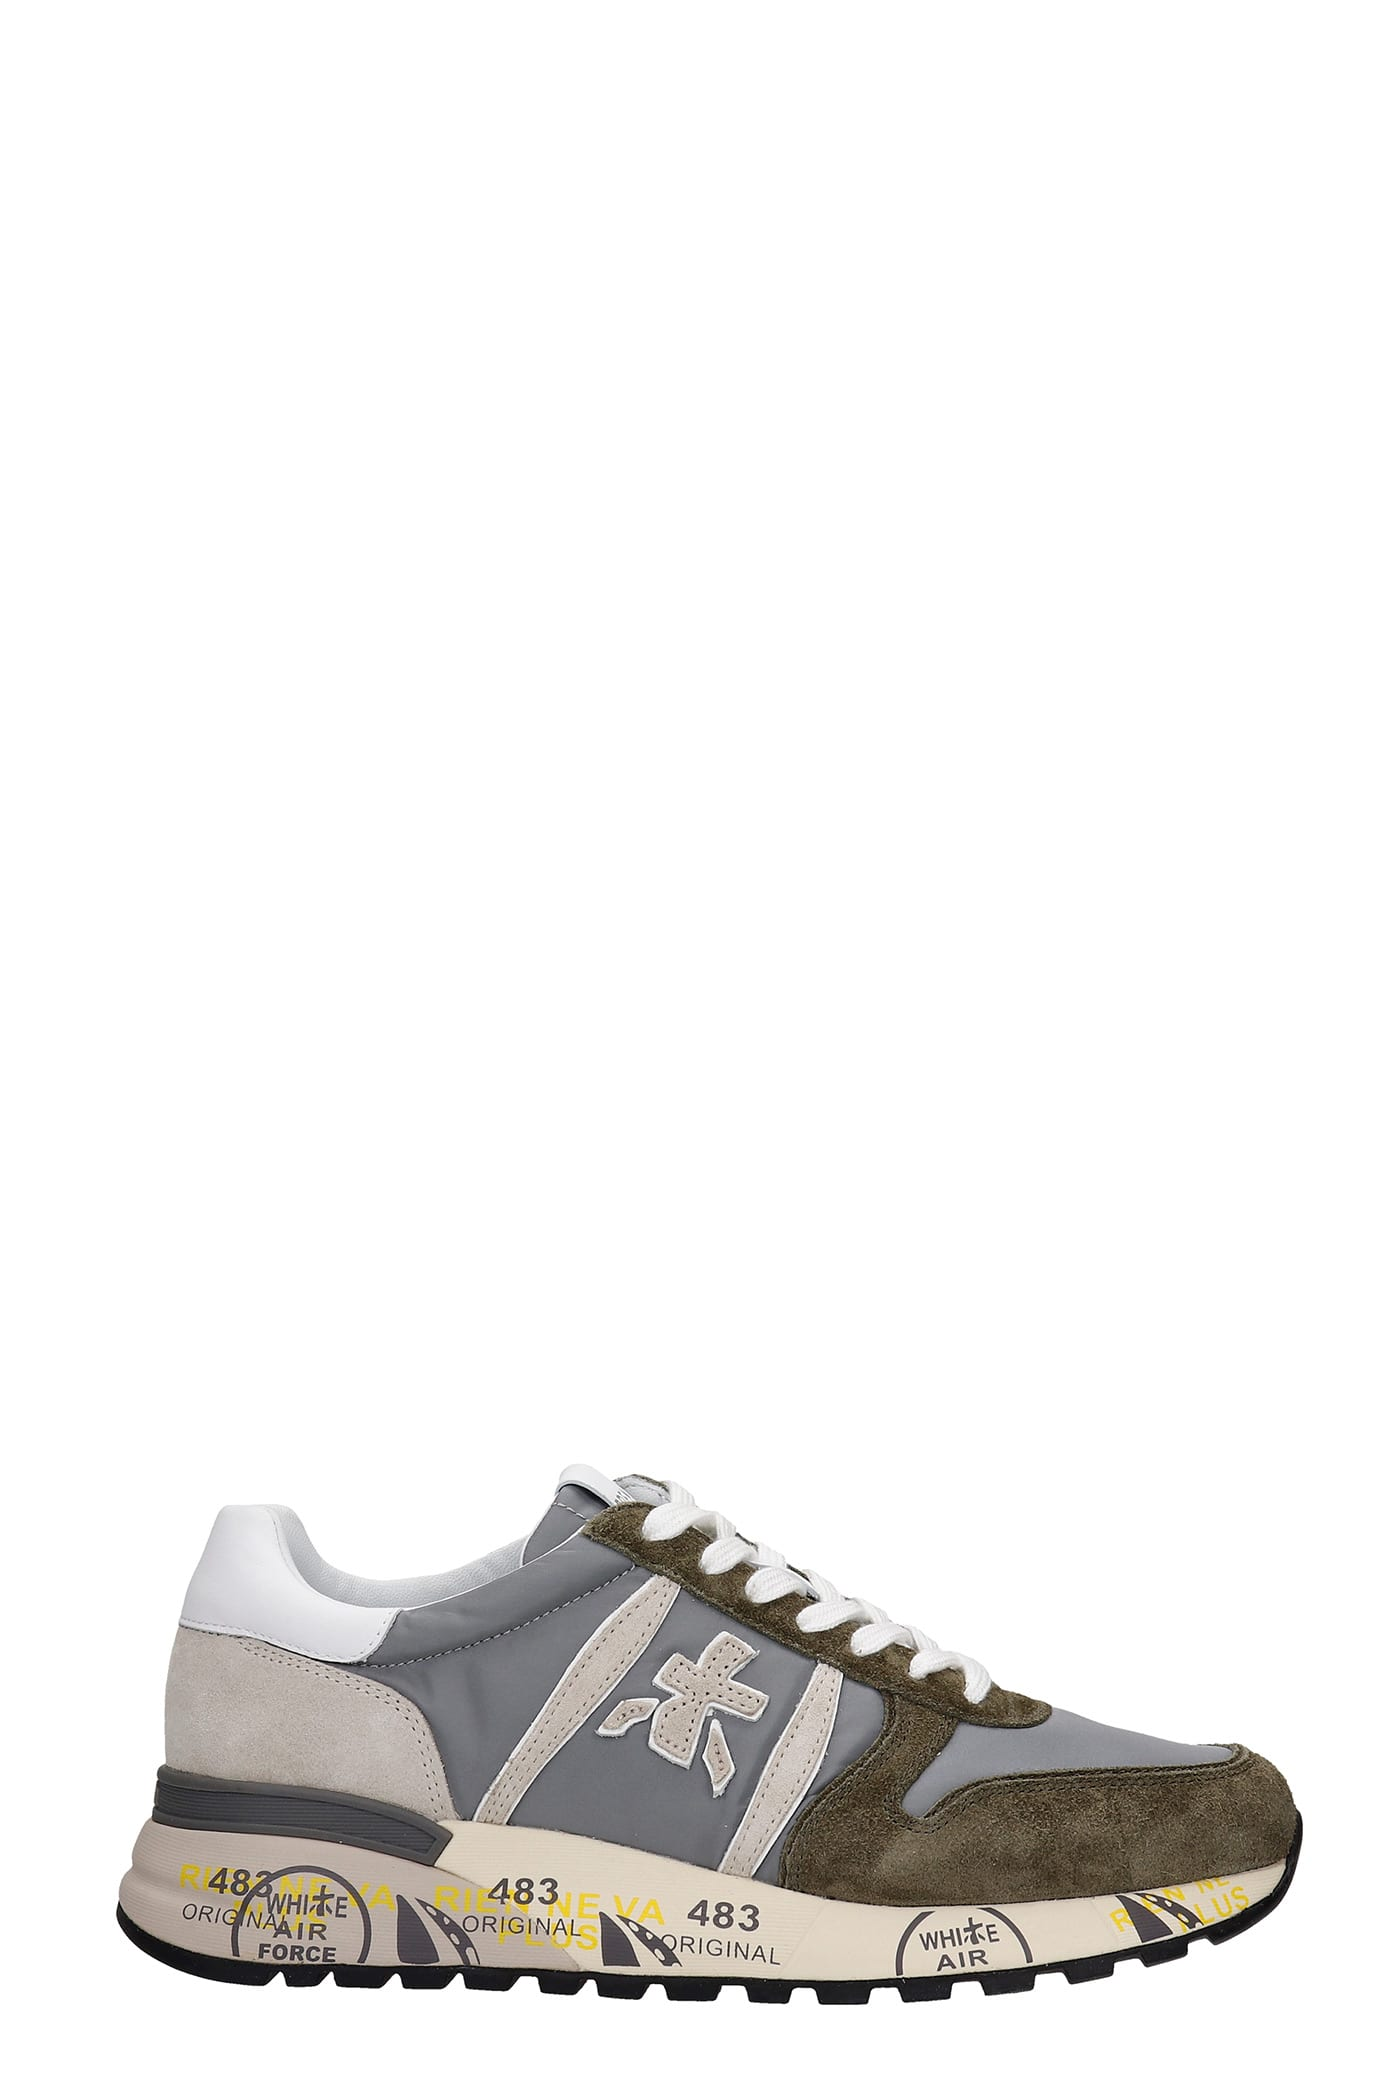 Premiata Shoes LANDER SNEAKERS IN GREY SUEDE AND FABRIC